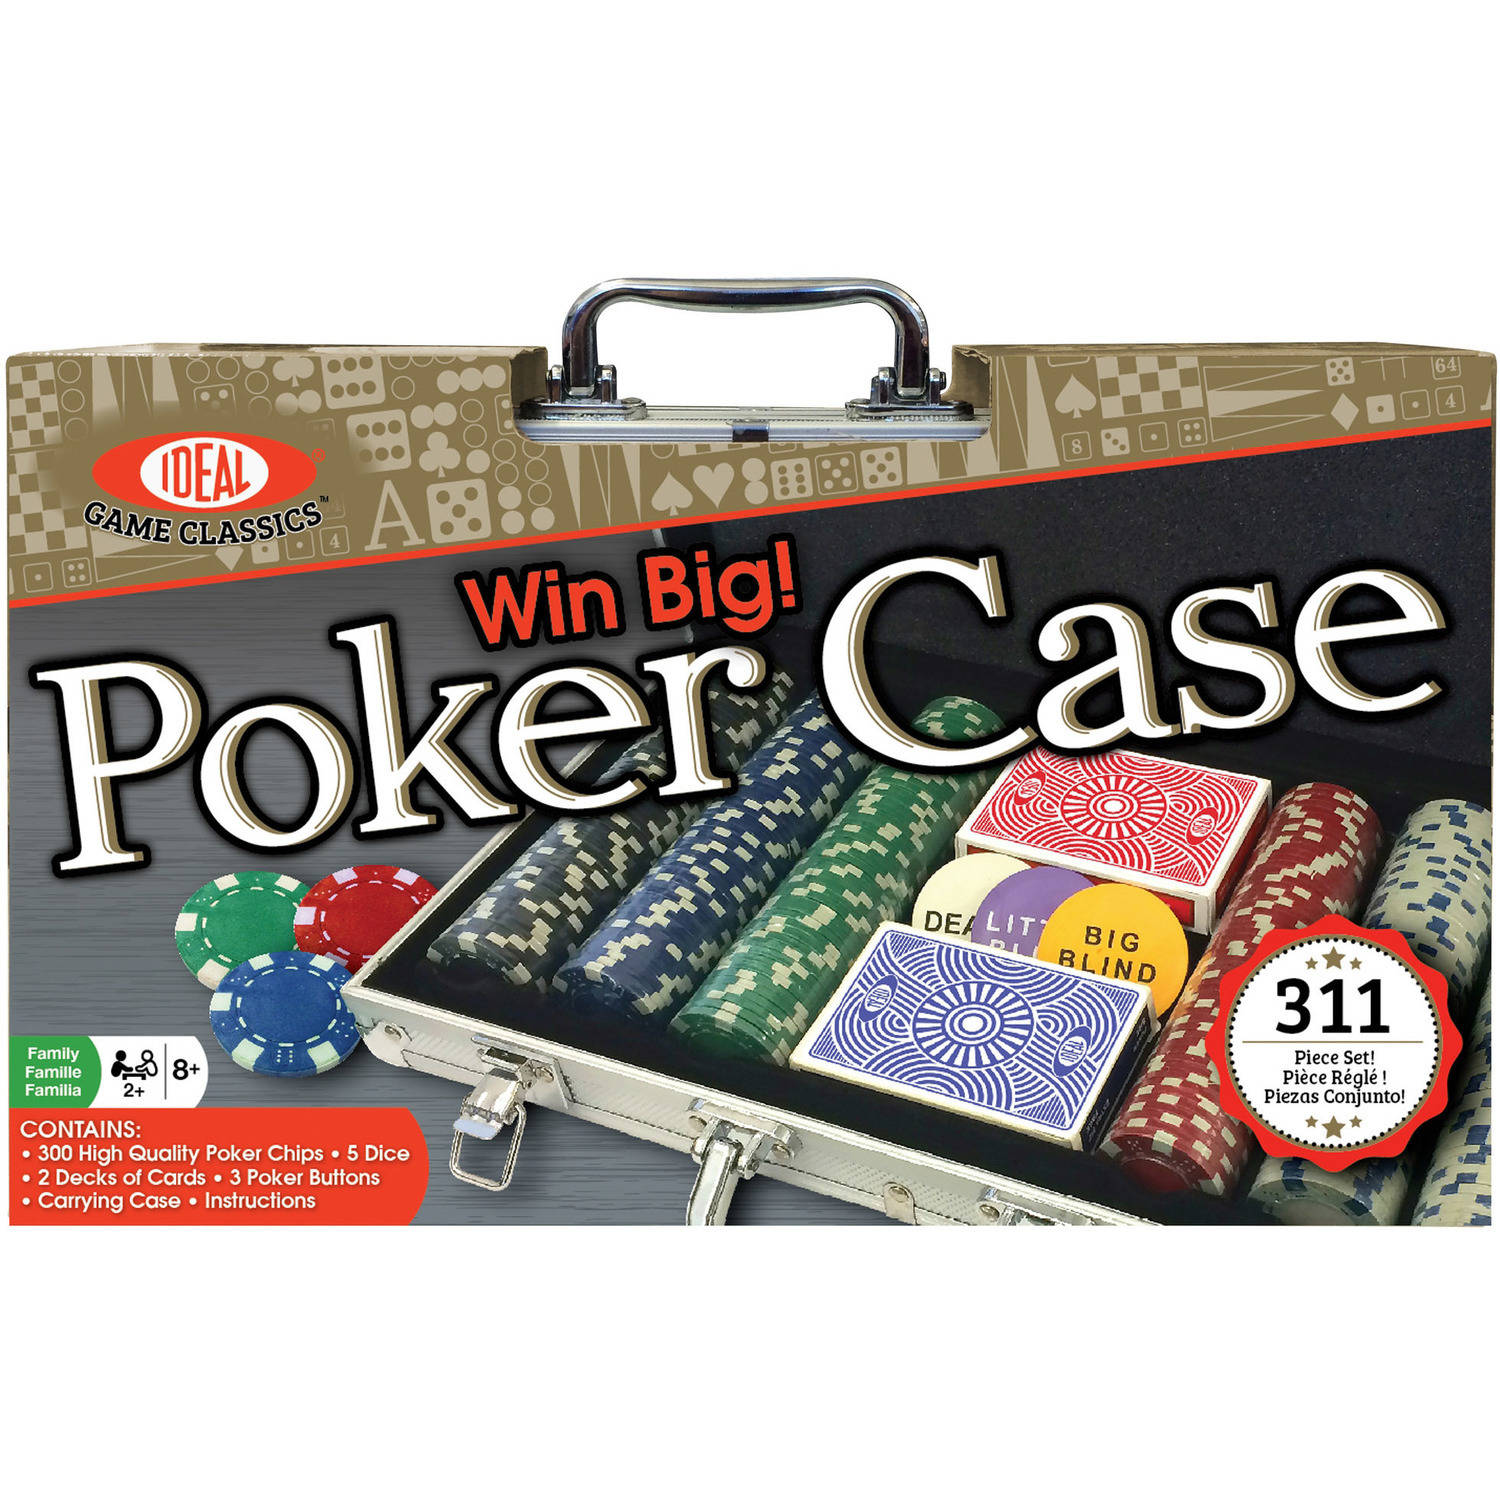 Ideal Win Big! Poker Case – 300 Piece Set